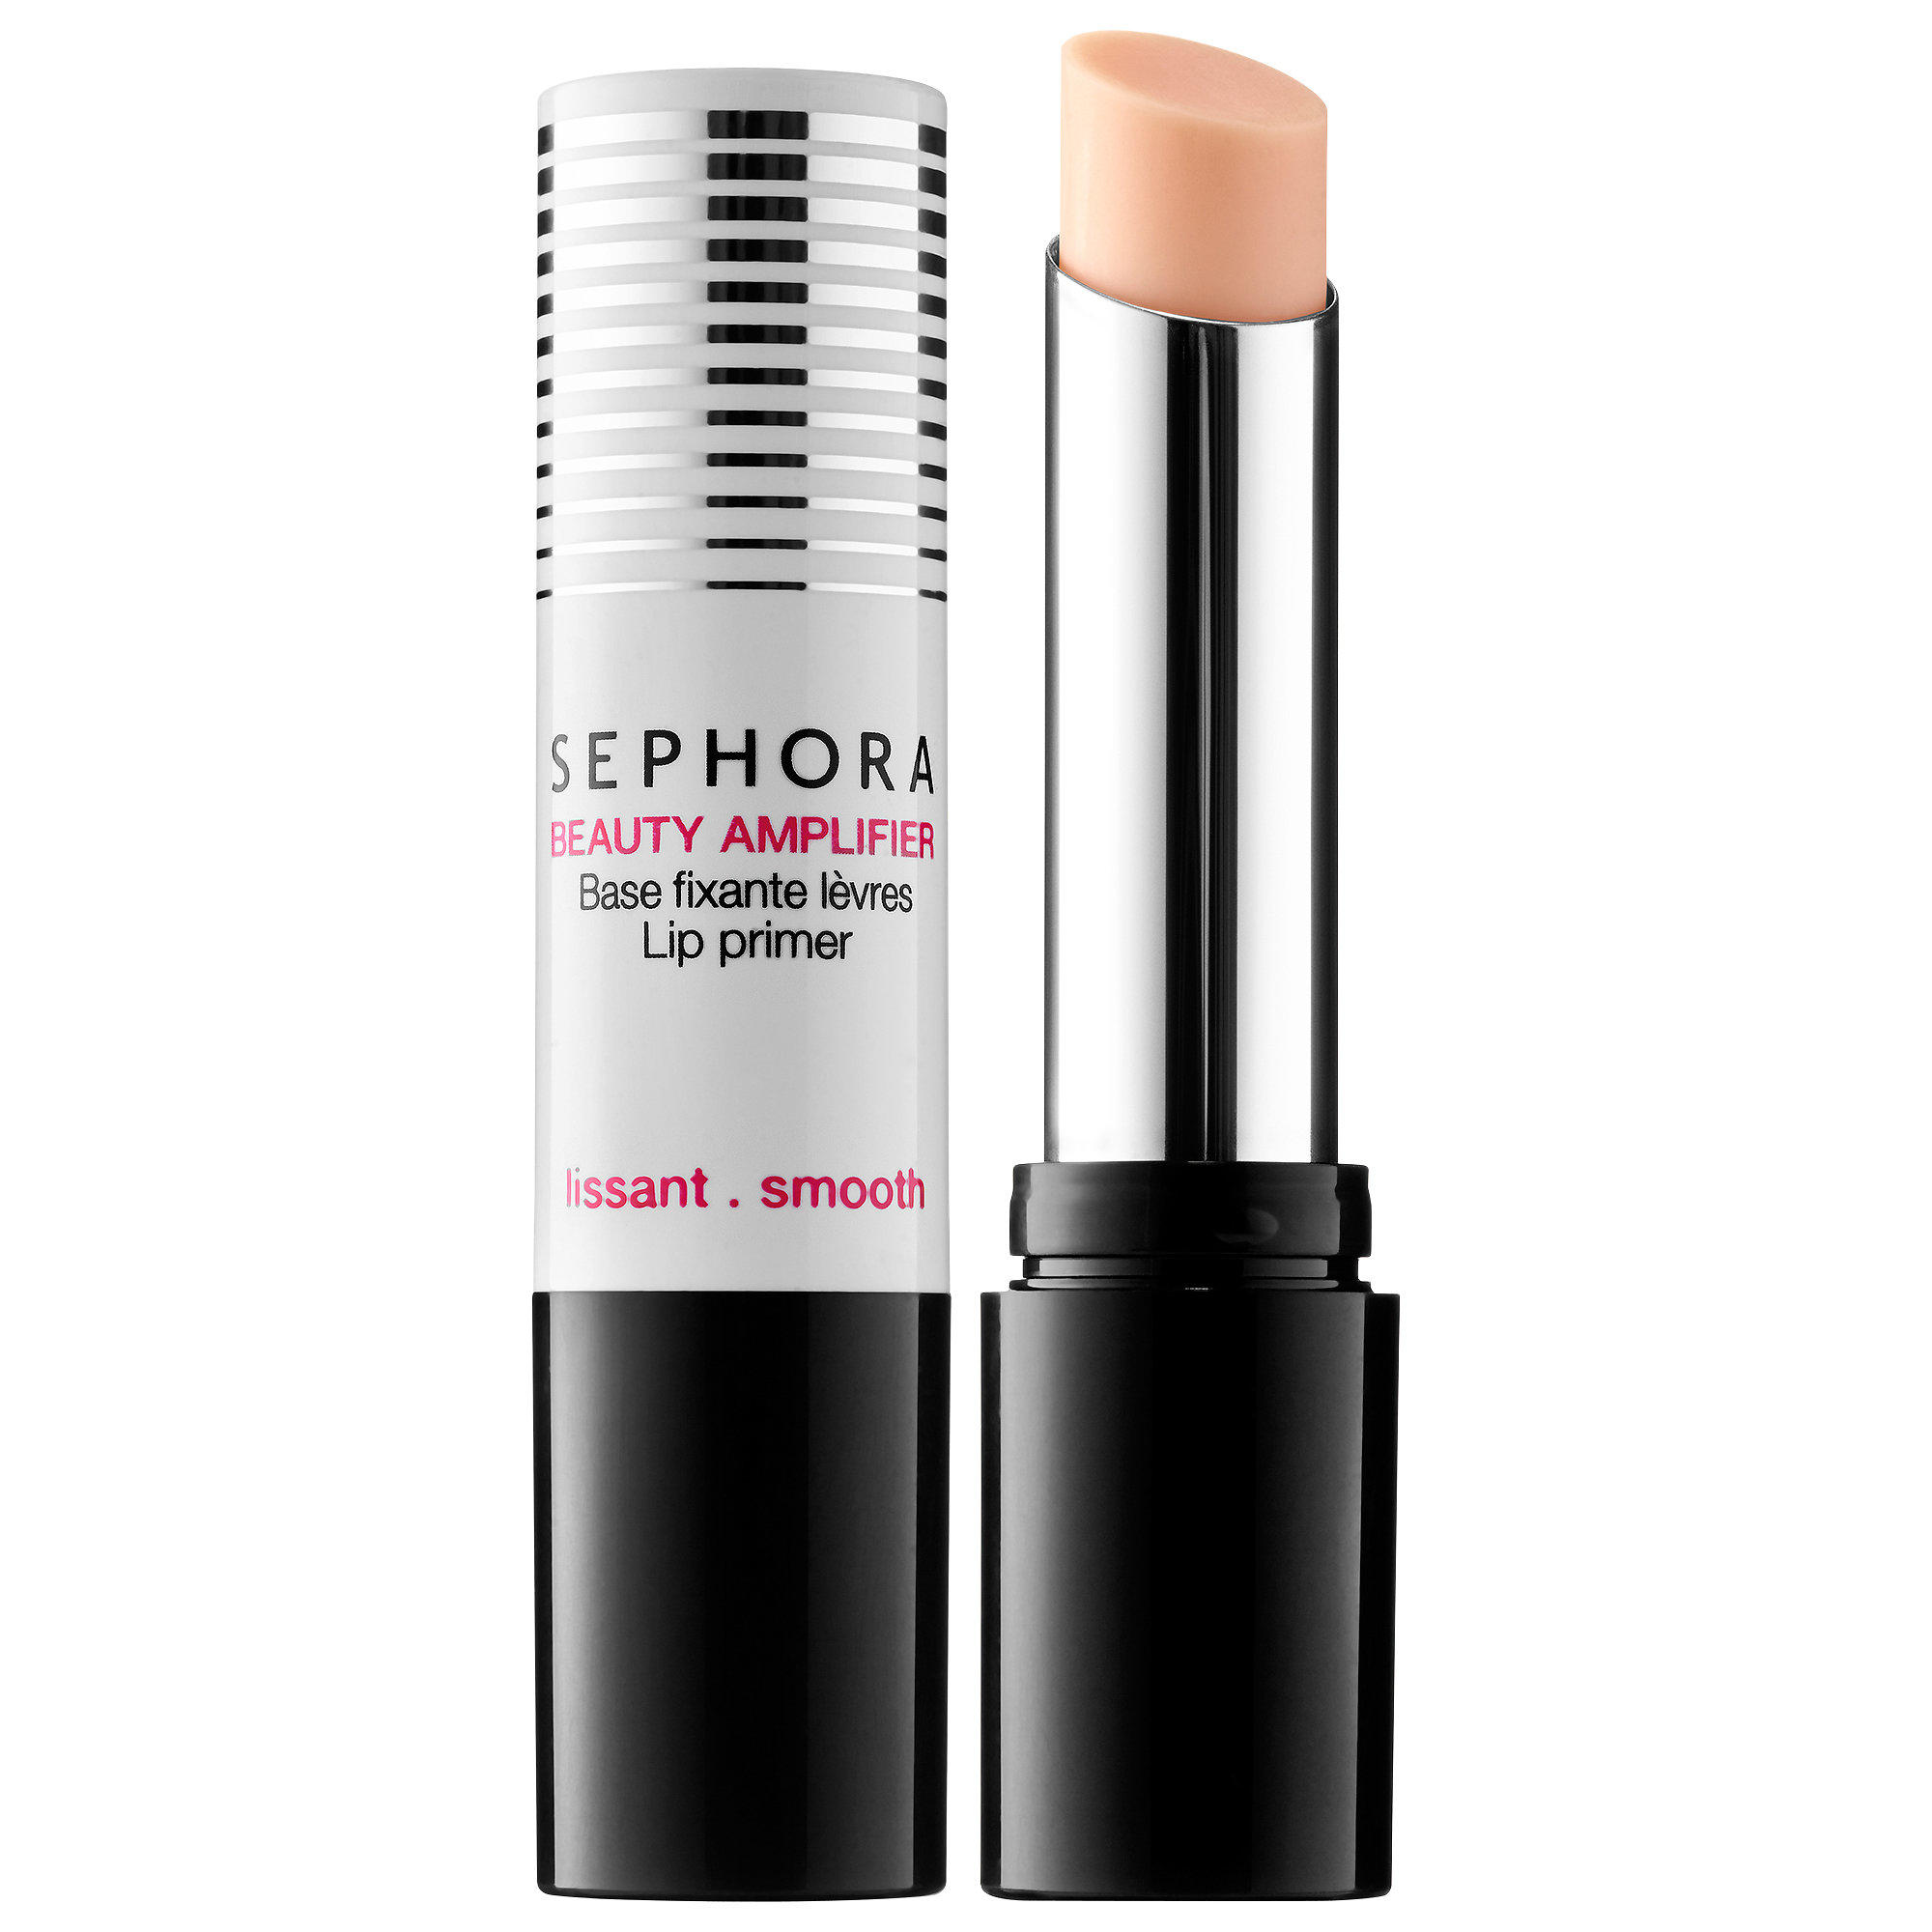 Sephora Beauty Amplifier Lip Primer